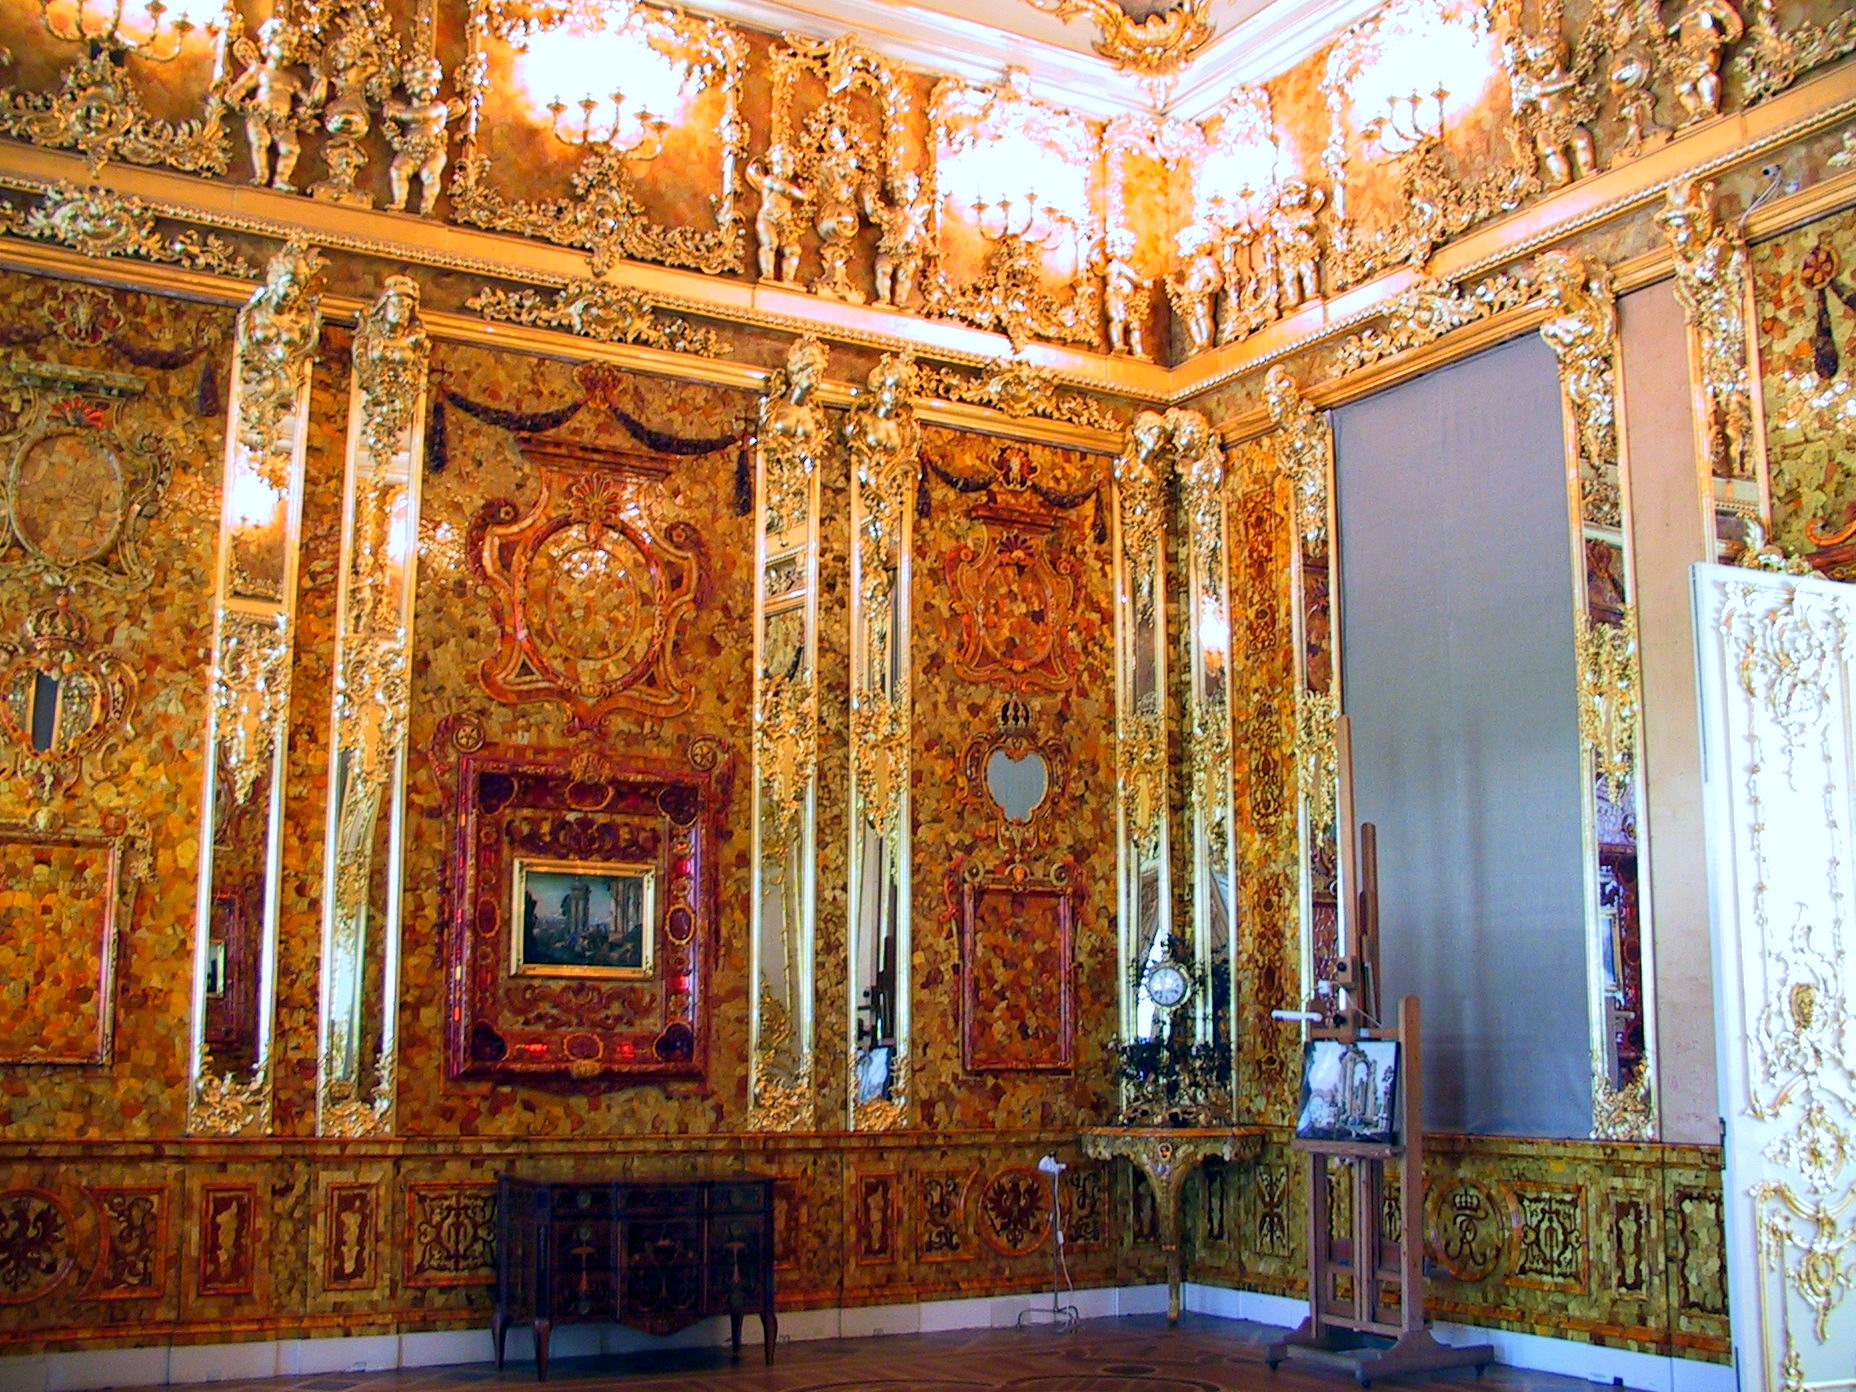 B5--05 Amber Roomof Catherine Palace, St. Petersburg, Russia-UP950146QJ